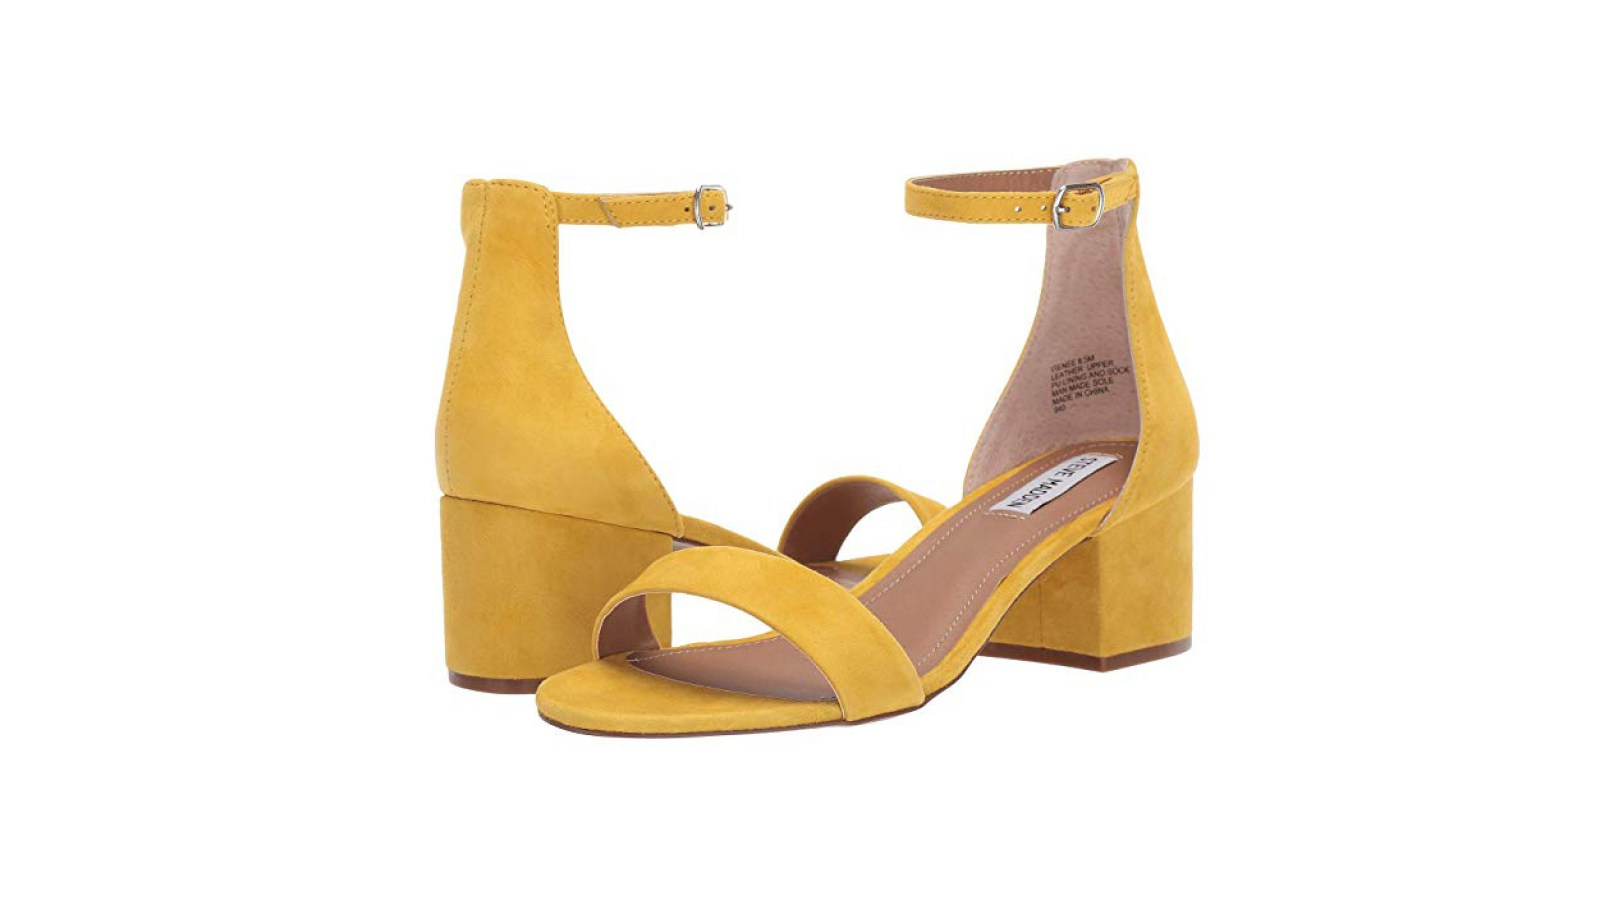 eb34b18f1ab Dress Up Any Spring or Summer Outfit Easily With These Sandals